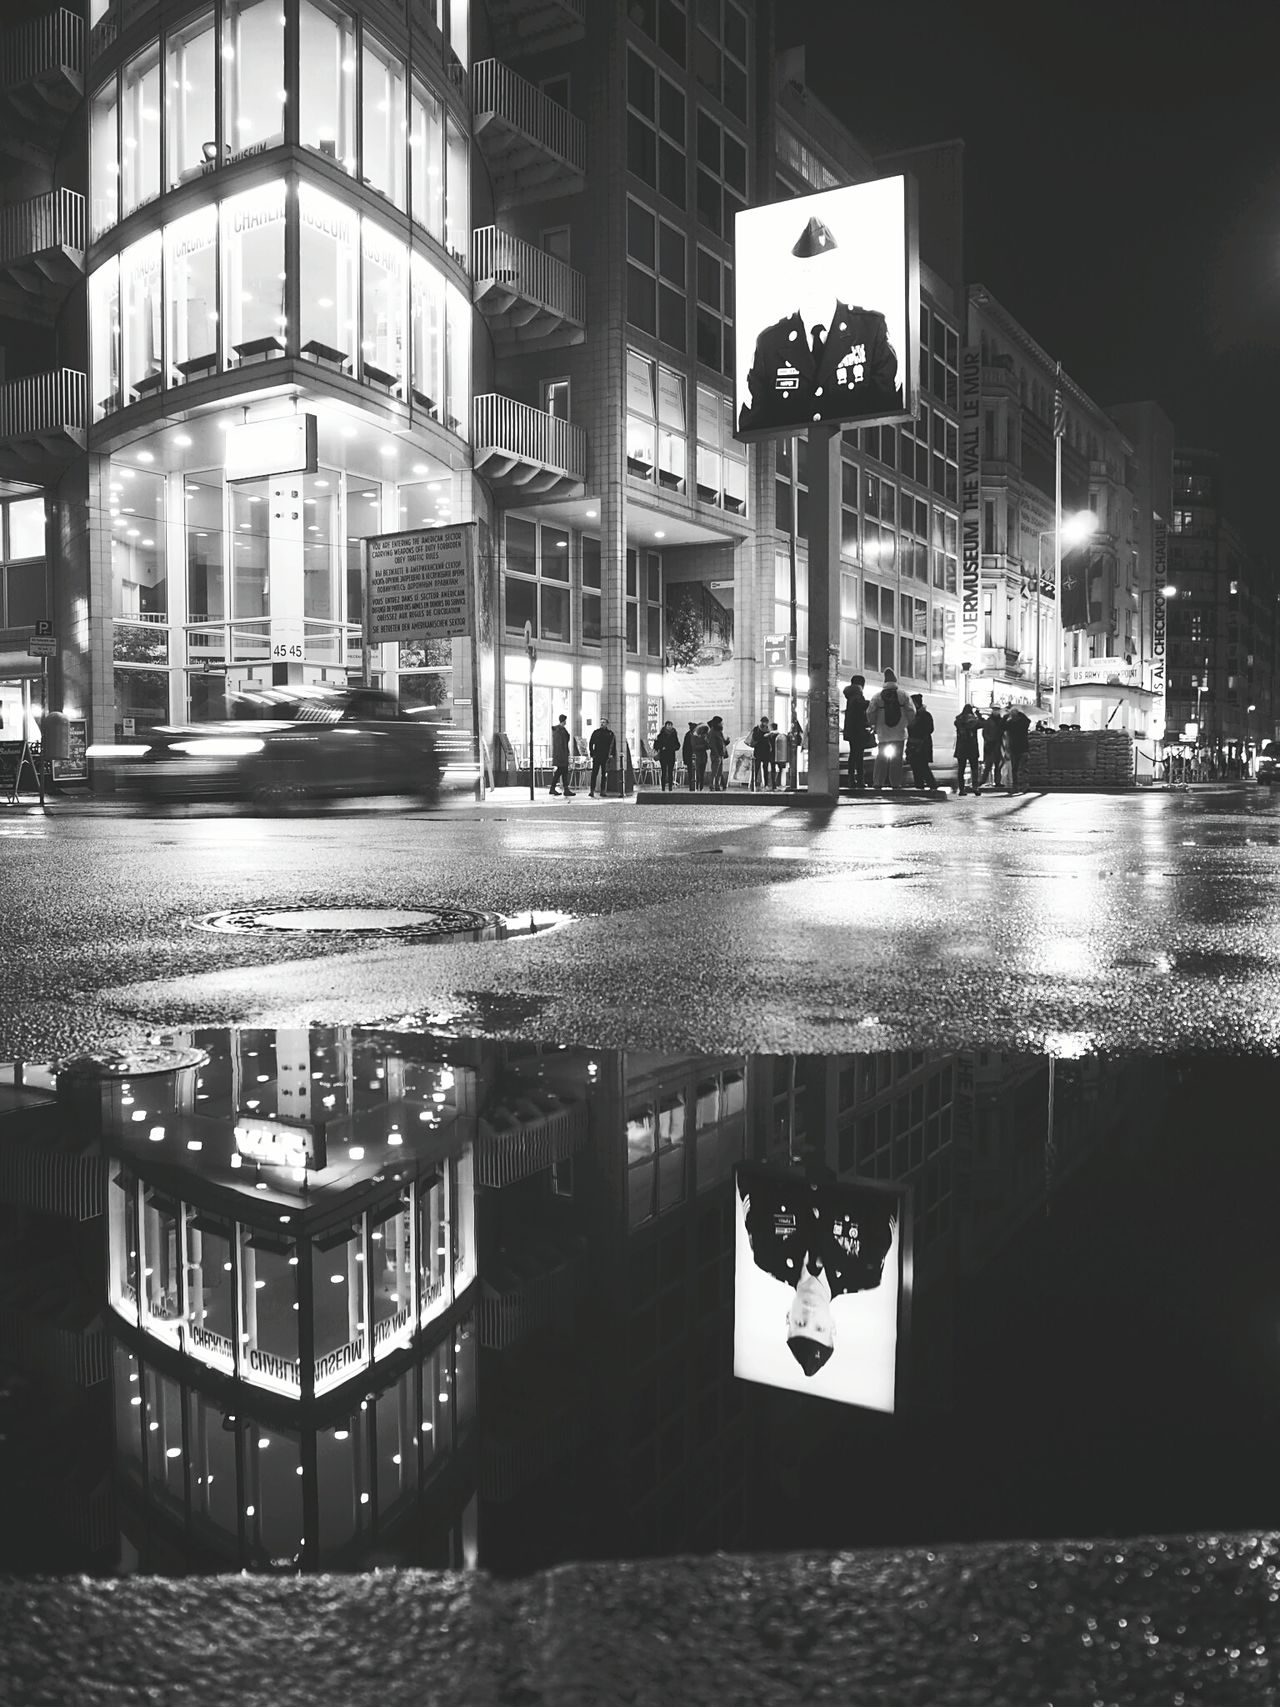 Soldier in a Puddle - at Checkpoint Charly in Berlin Reflection Water Night Outdoors Architecture Illuminated Checkpointcharlie Berlin Streetlights Road Soldier Winter Cold Day Rain Welcomeweekly EyeEmNewHere Blackandwhite EyeEmNewHere